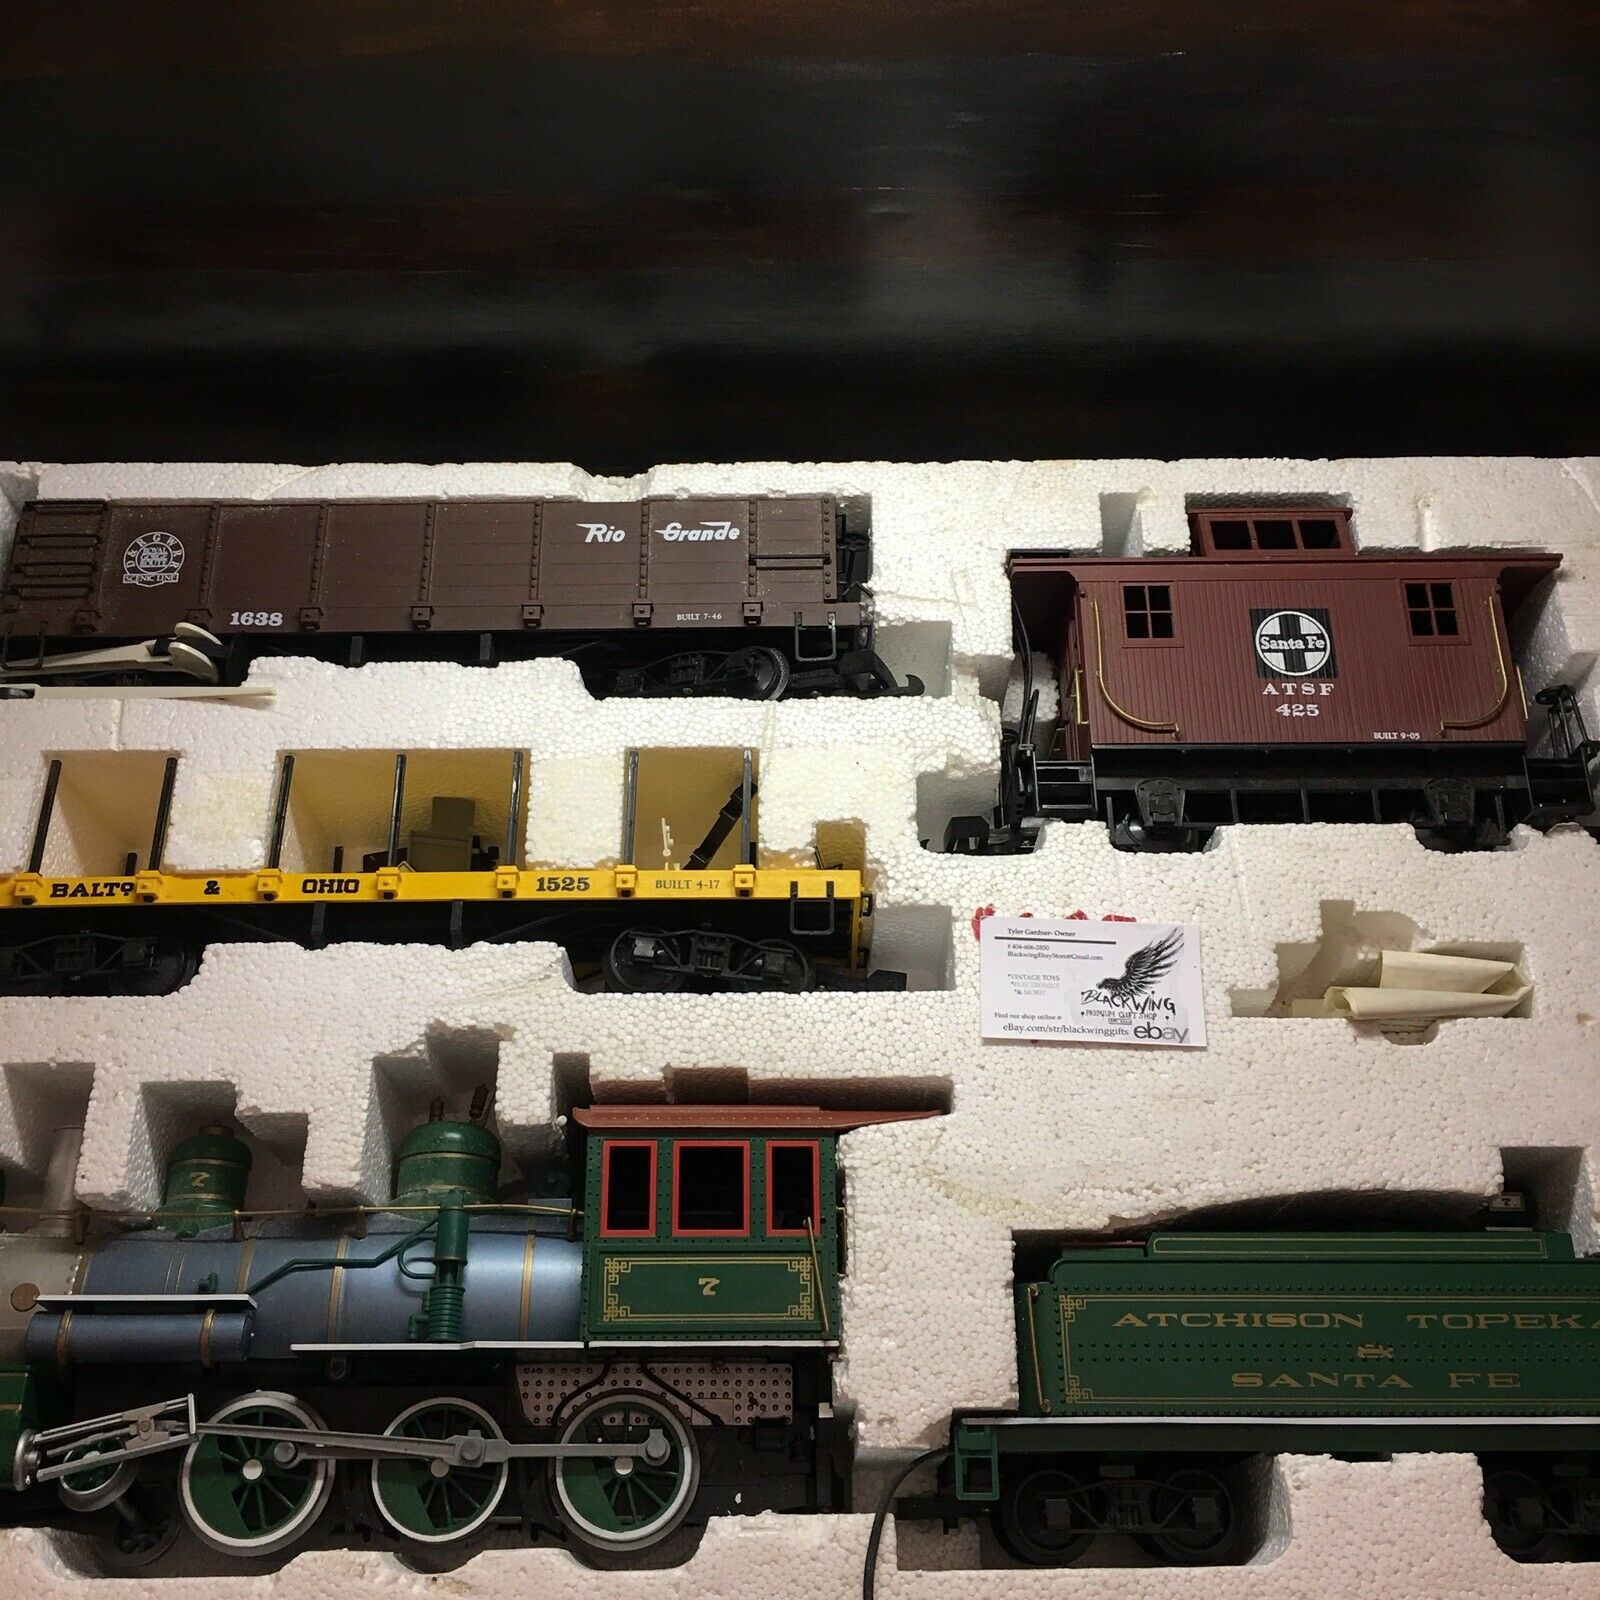 5 Piece Rio Grande Santa Fe Modell Electric Train Set ATSF Collectible Hobby